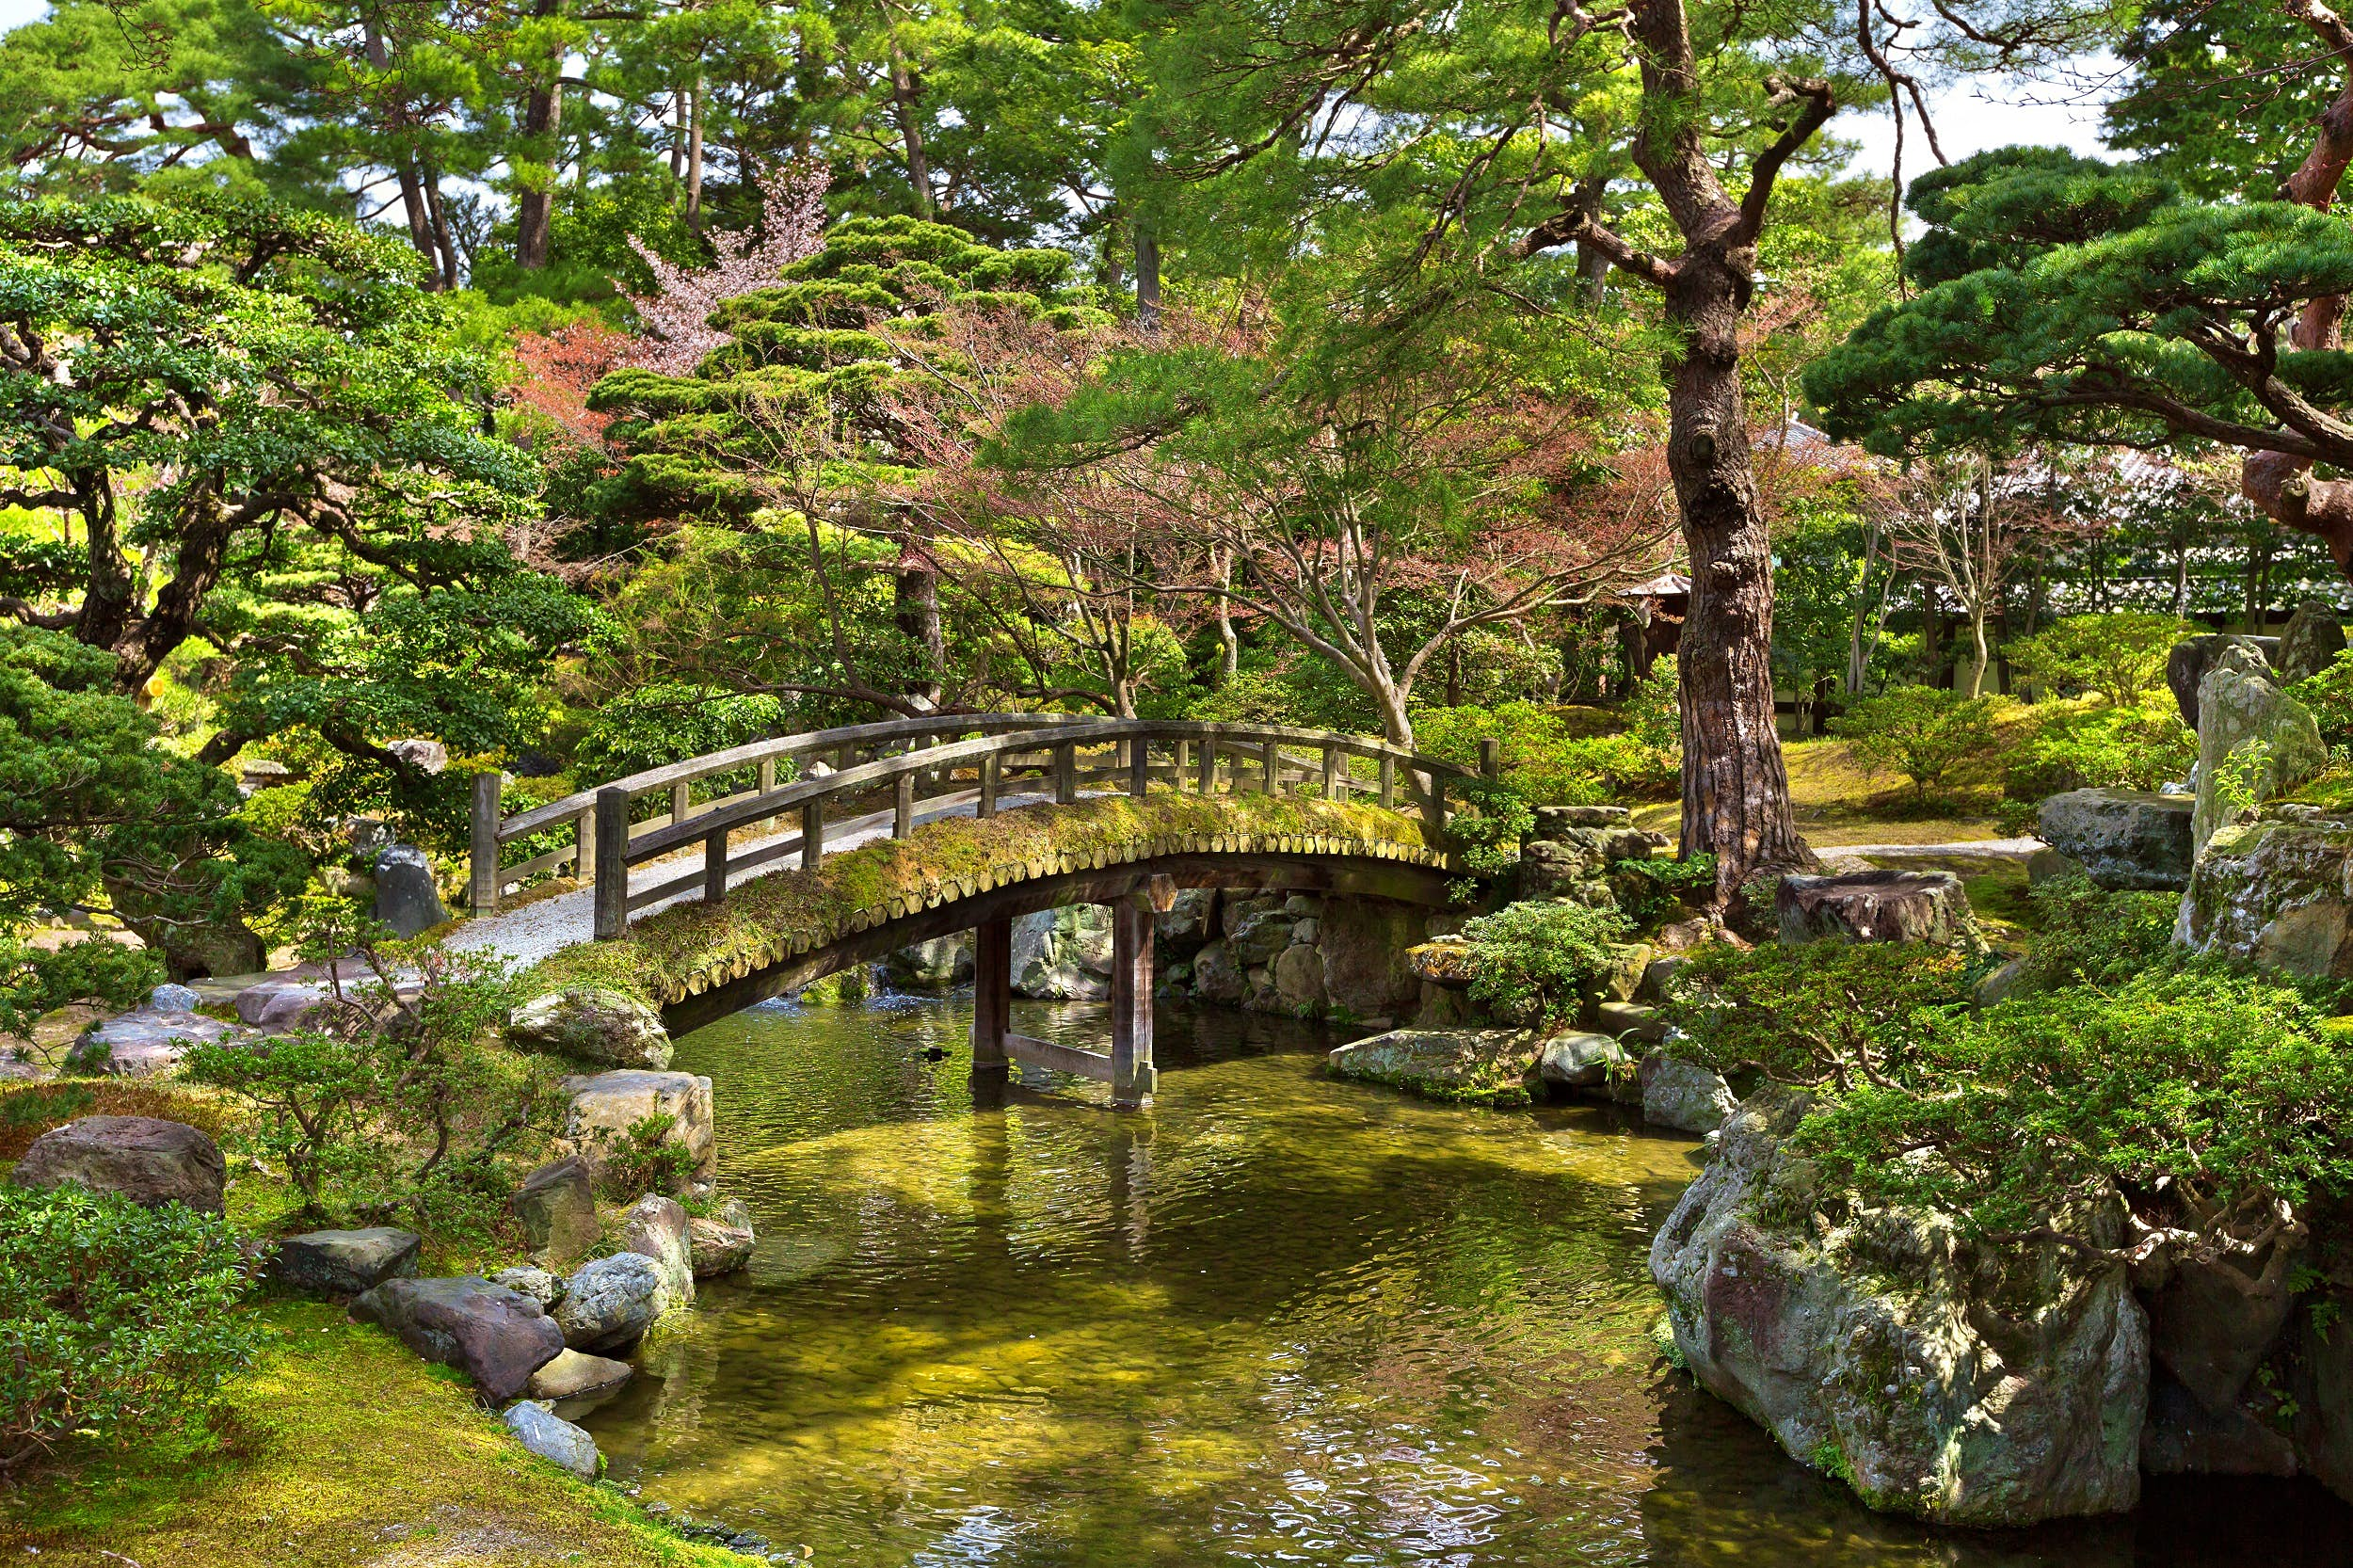 Beautiful Japanese garden in the Kyoto Imperial Palace, Japan; a wooden bridge crosses a small pond that is surrounded by rock outcrops, moss and trees.